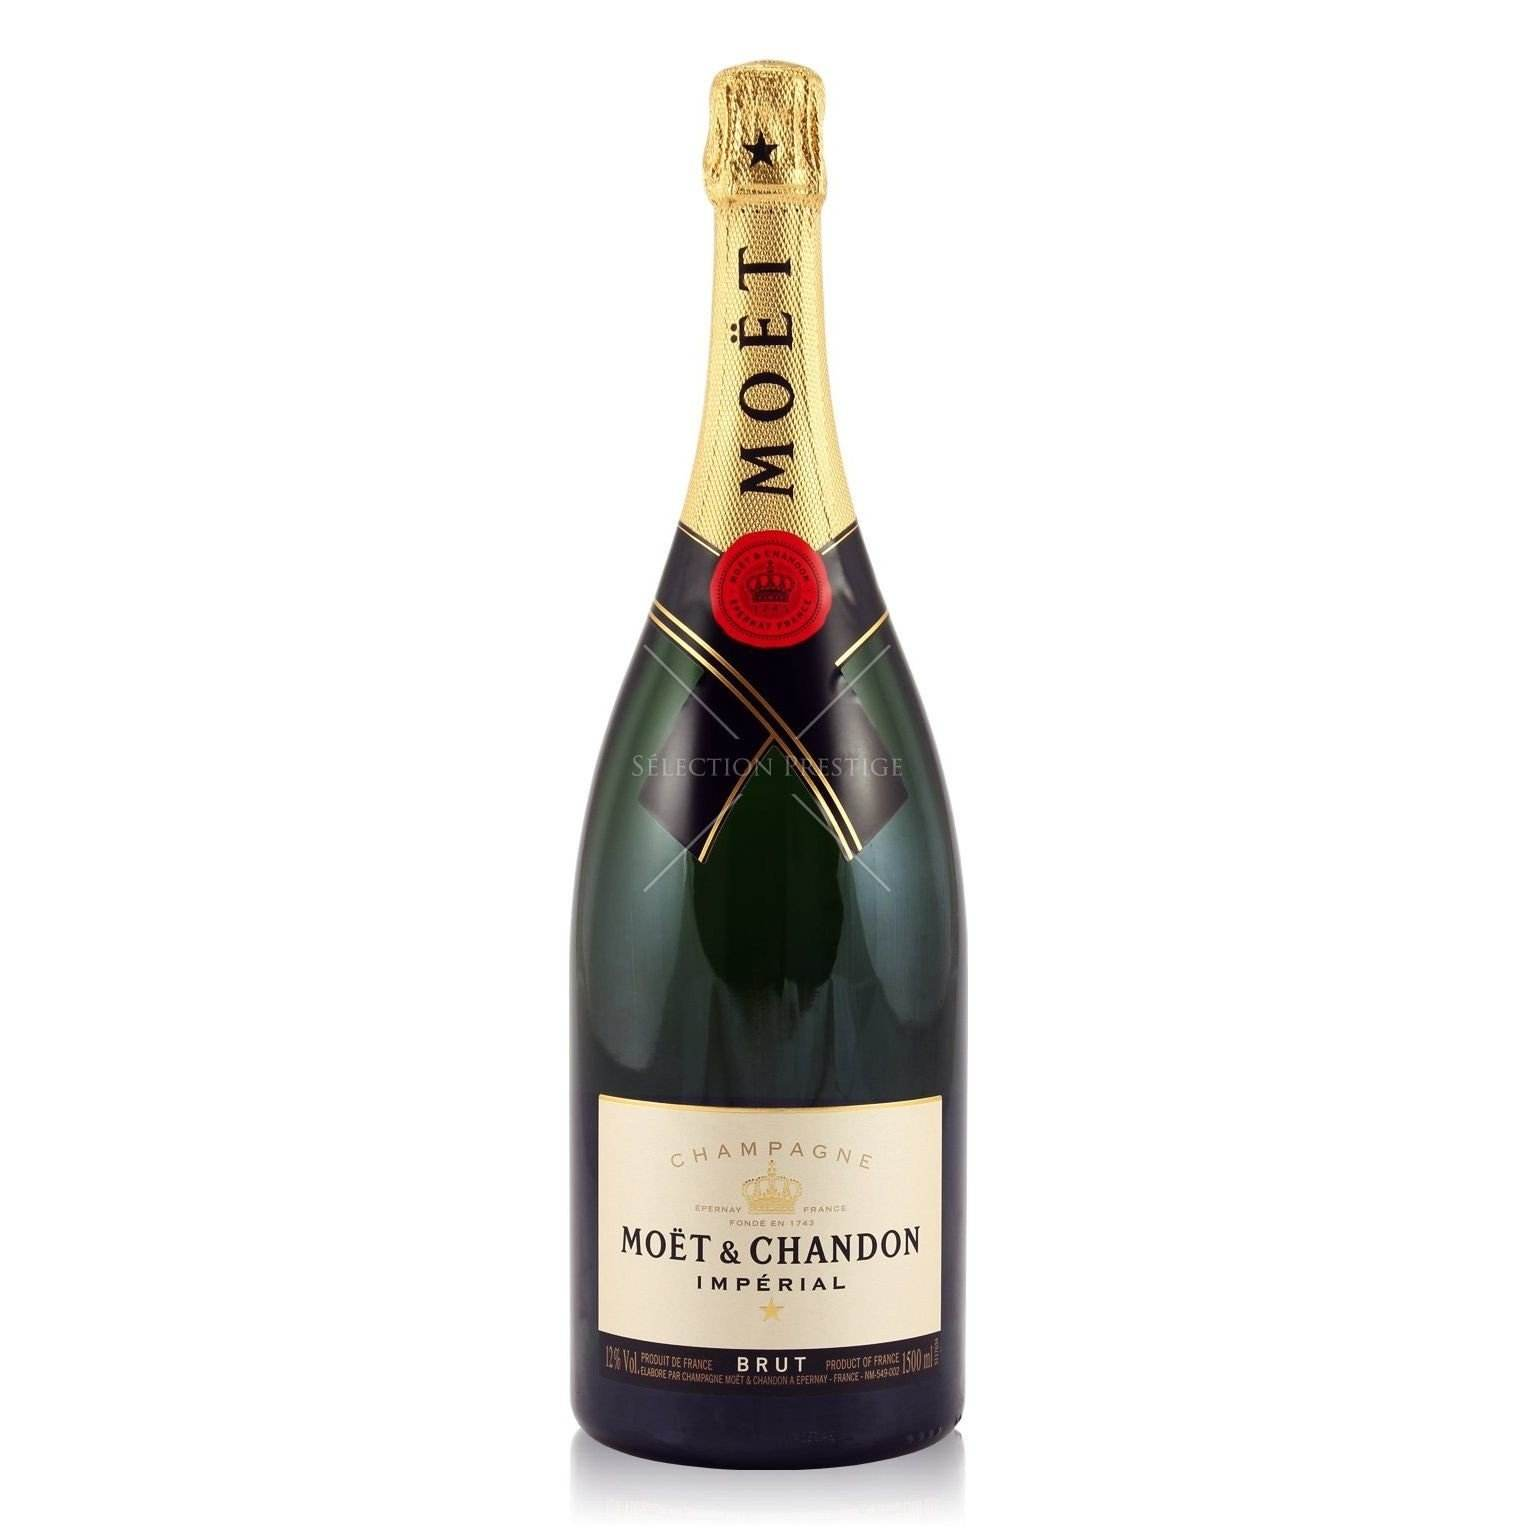 Moet & Chandon Imperial Brutแชมเปญ